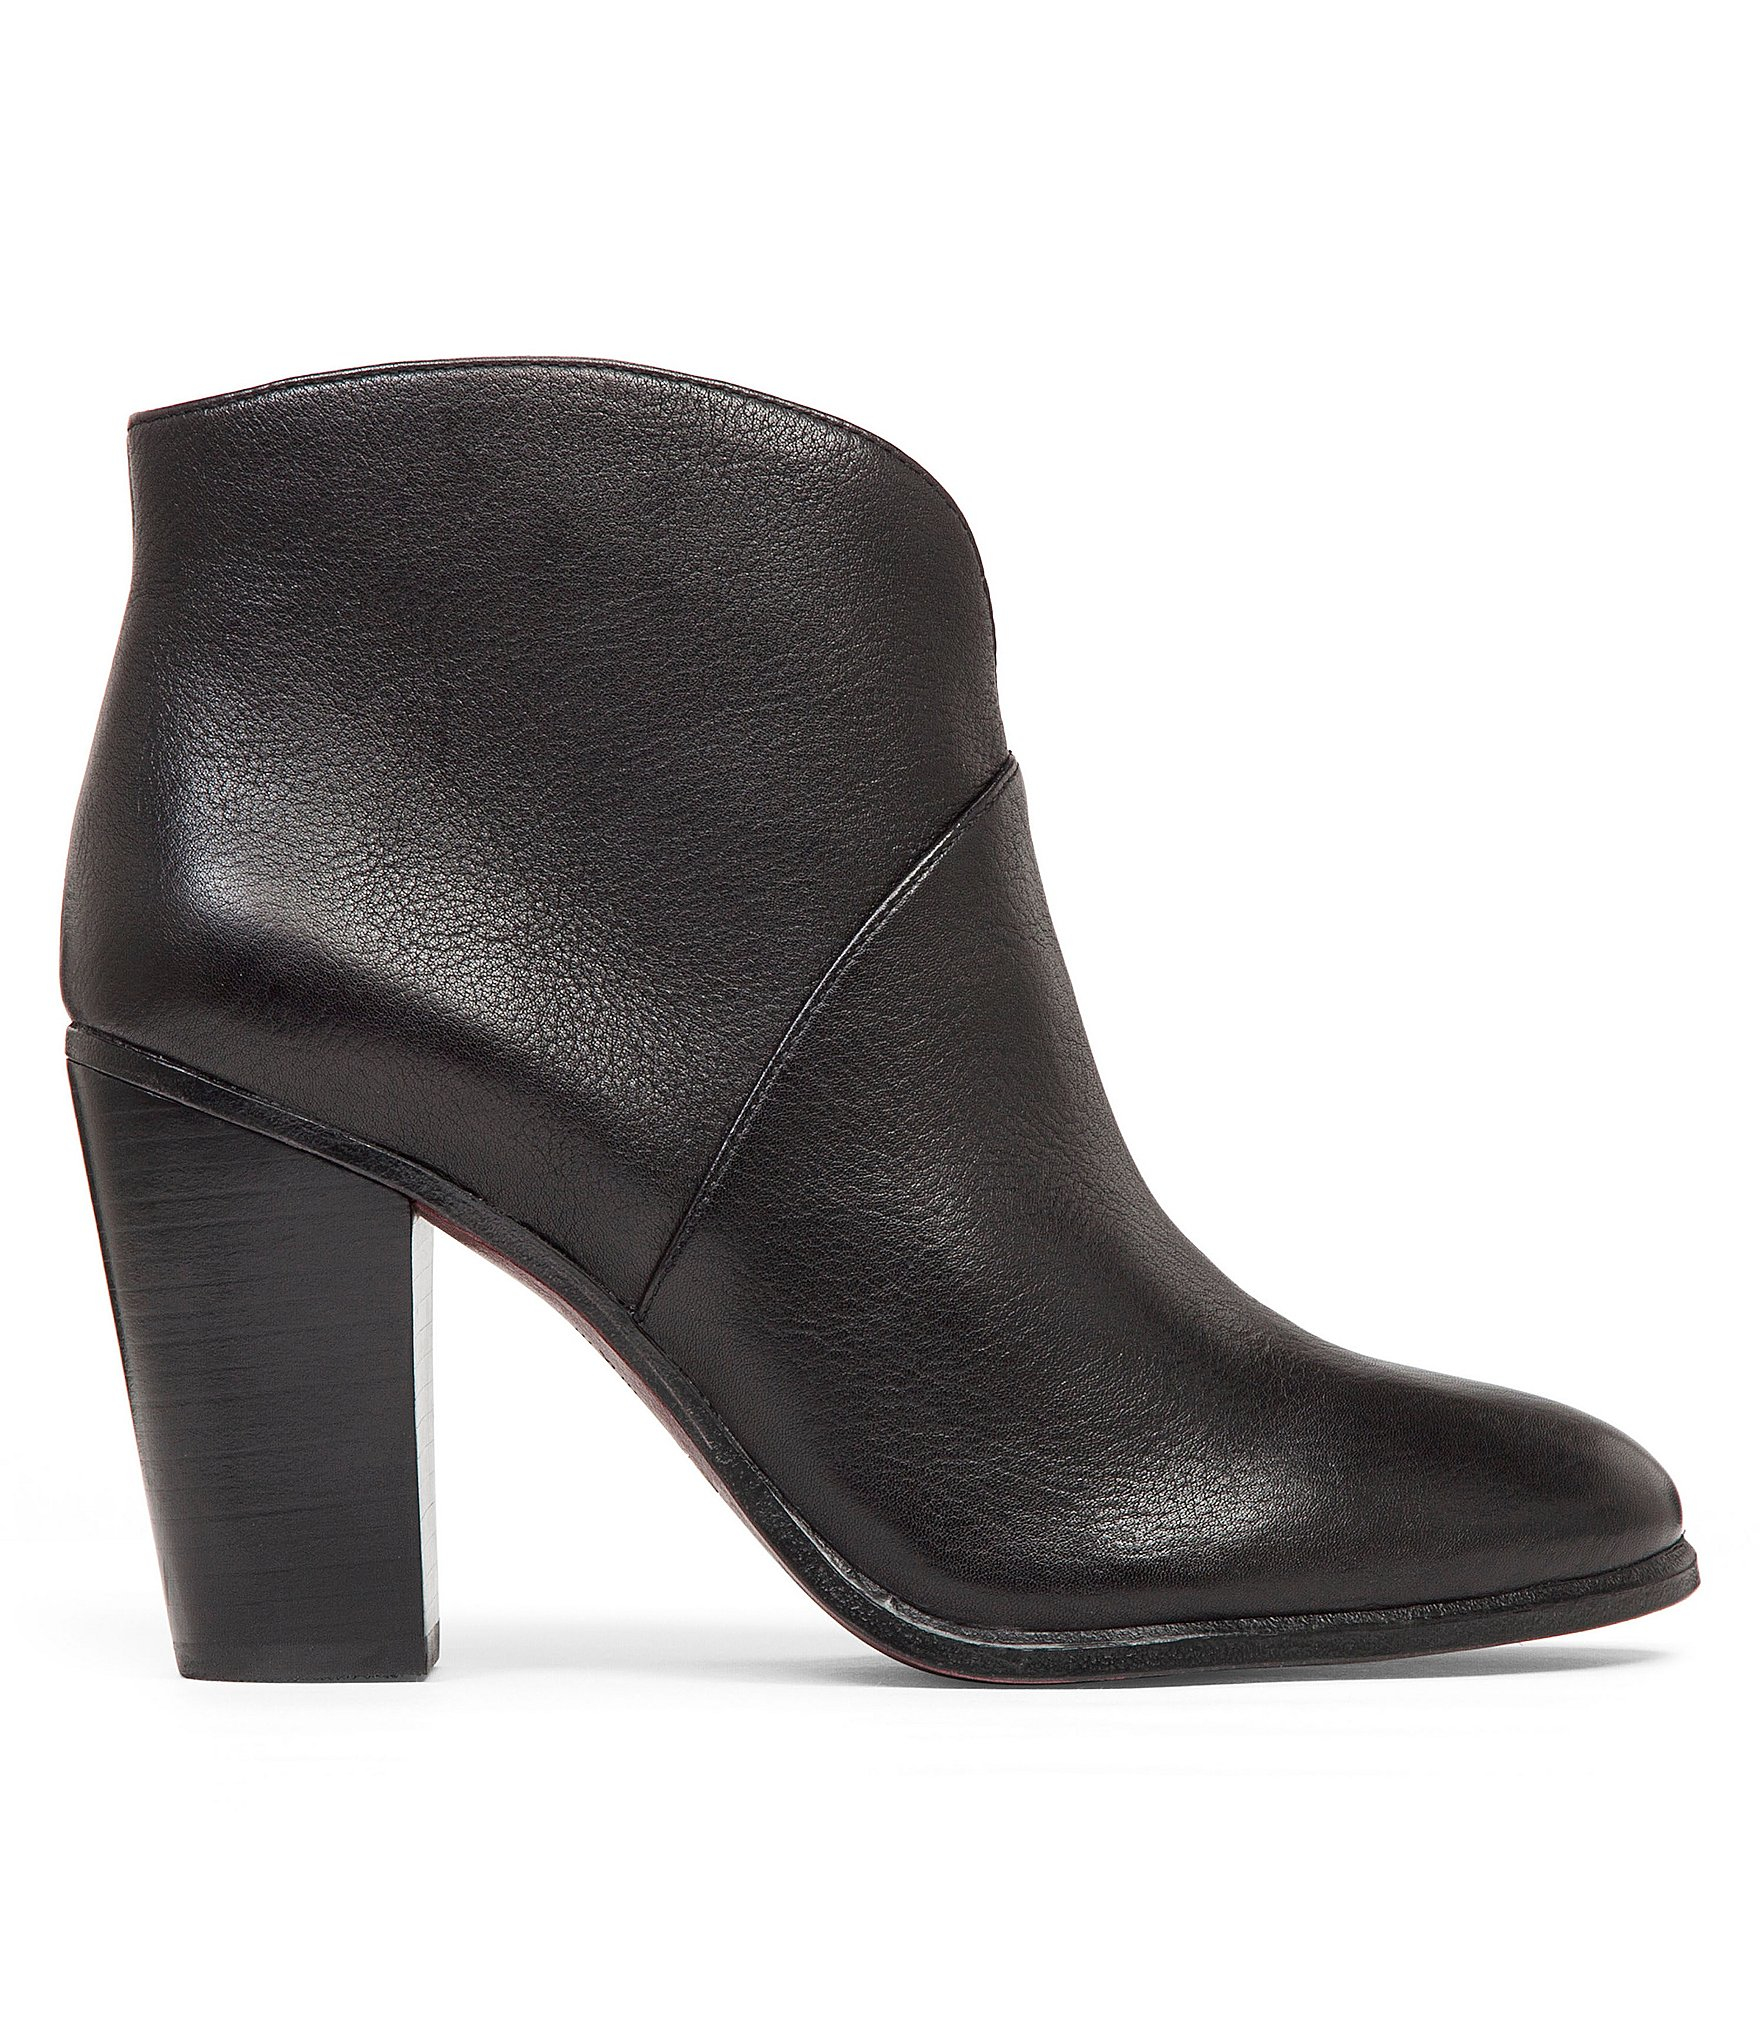 Lyst - Vince camuto Franell Leather Booties in Black